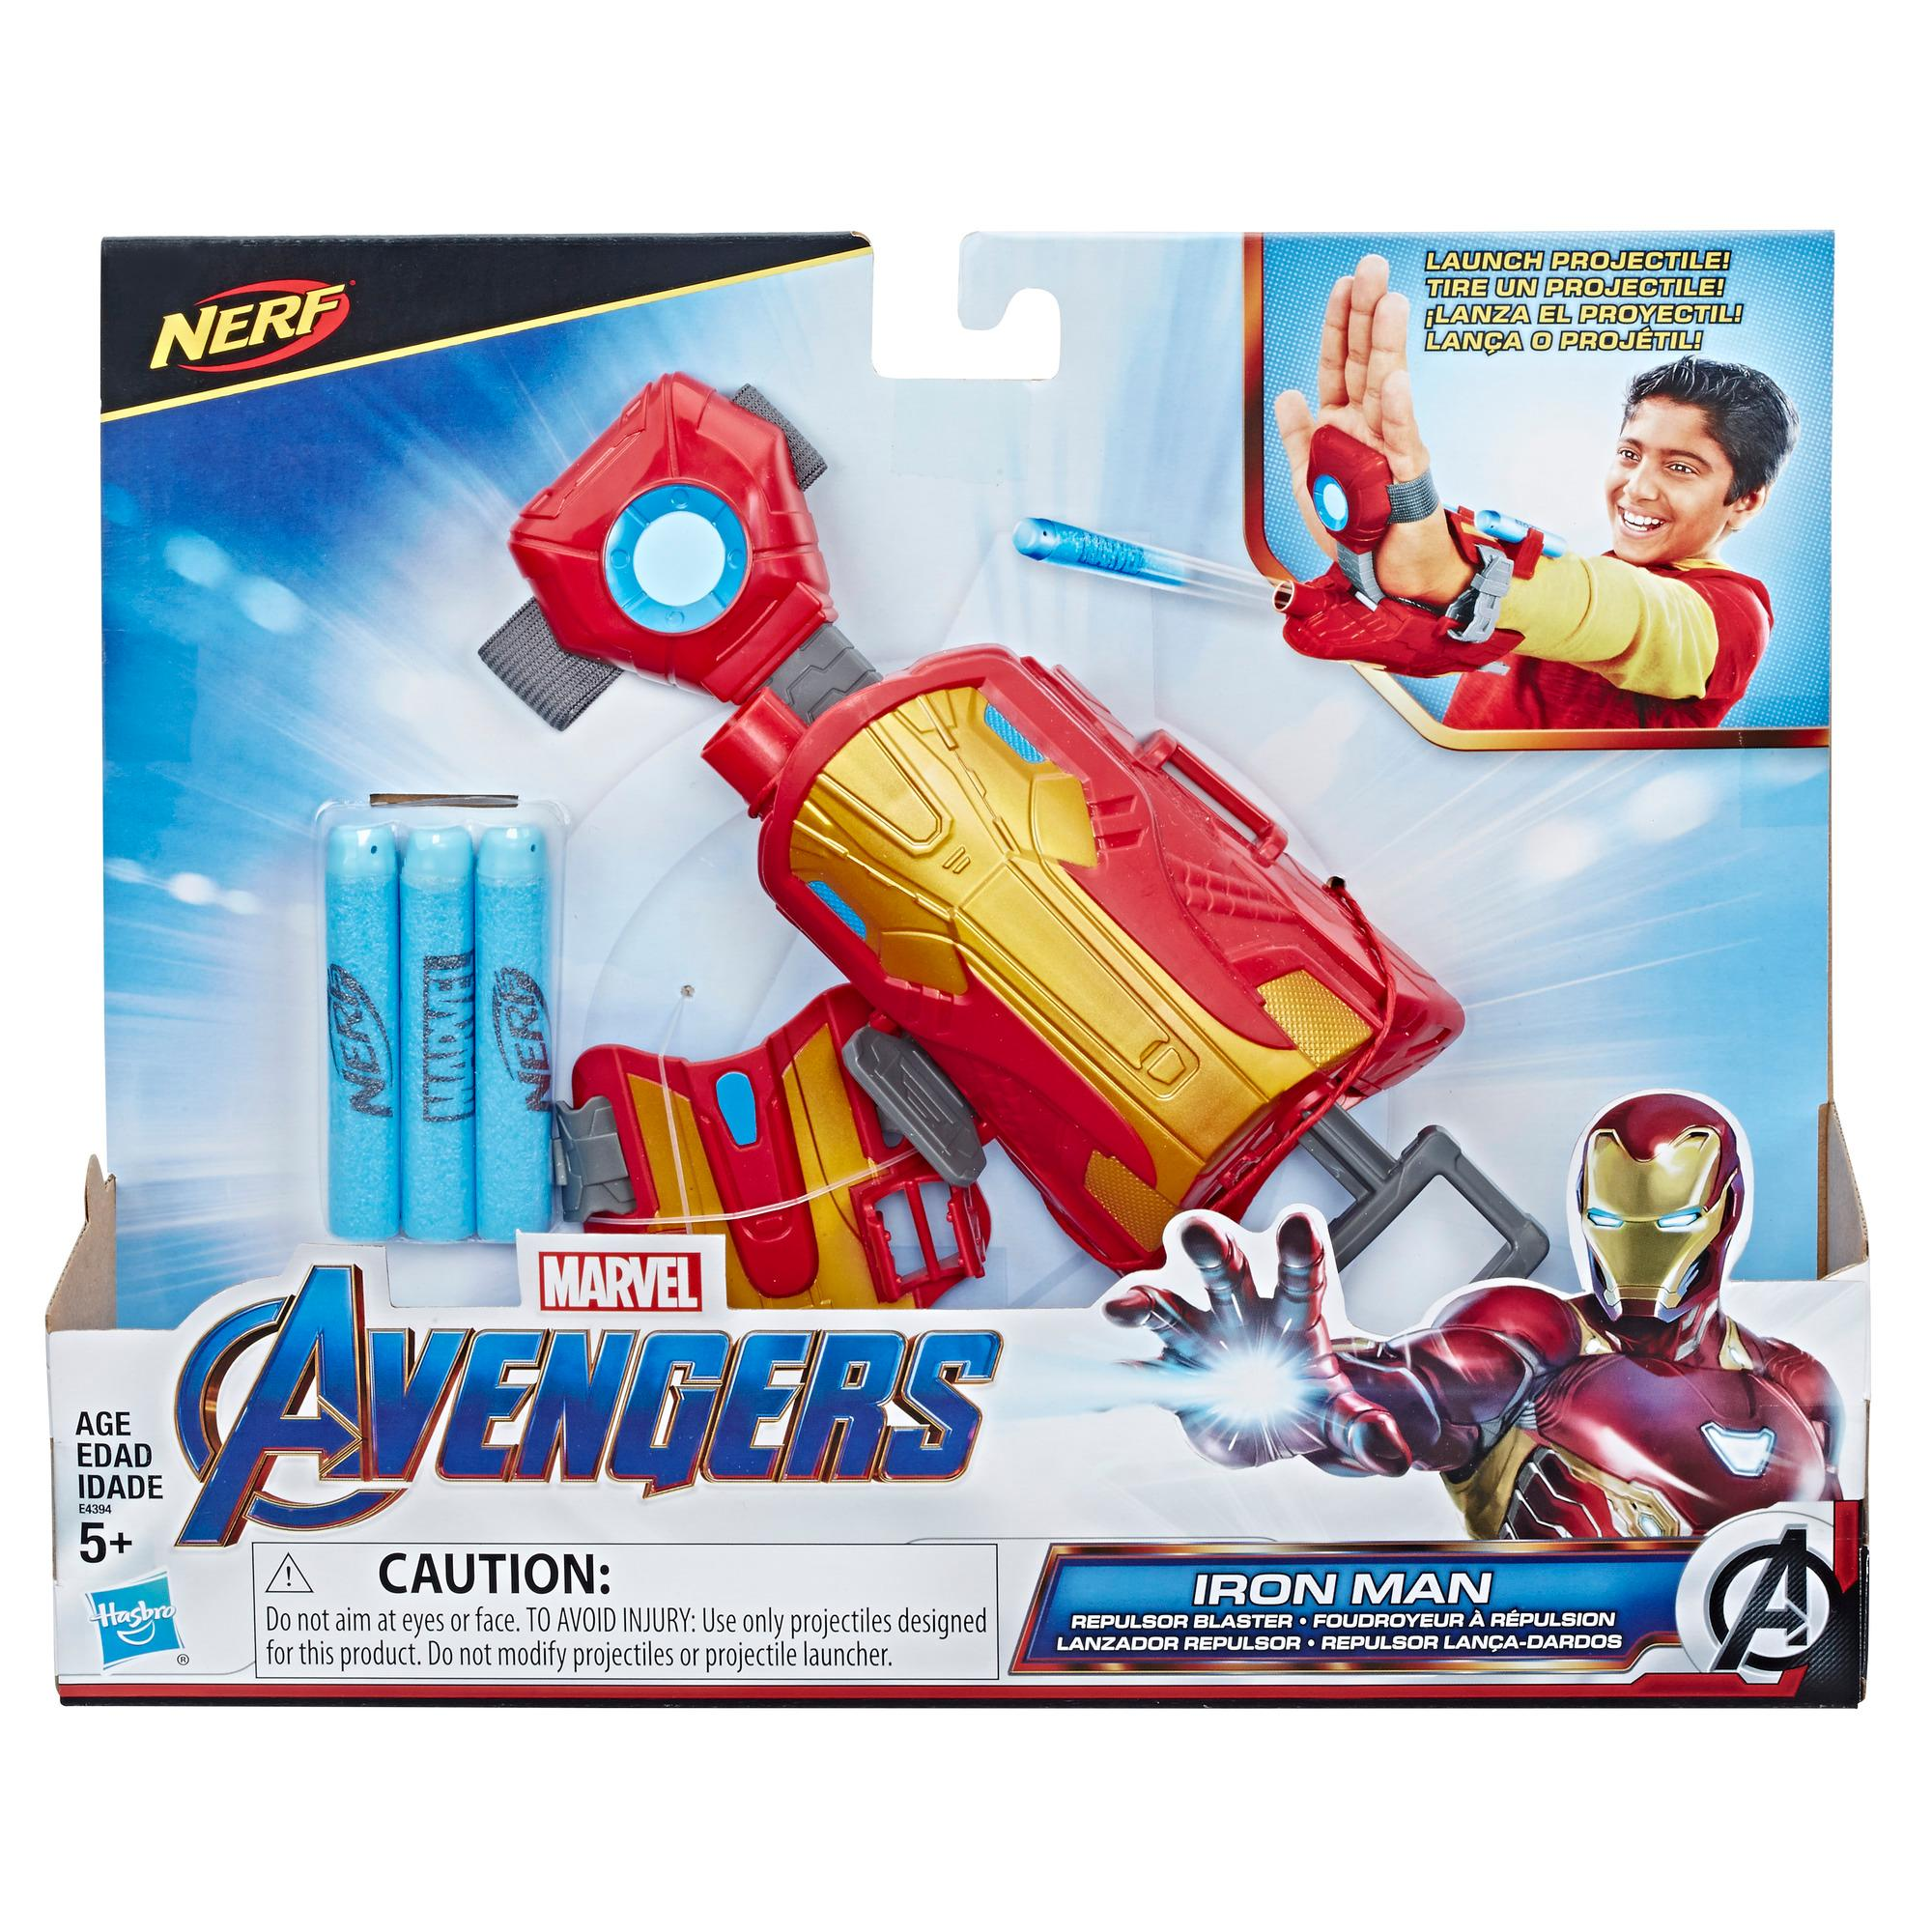 Marvel Avengers Iron Man Blast Repulsor Gauntlet with Nerf Darts for Costume and Role Play